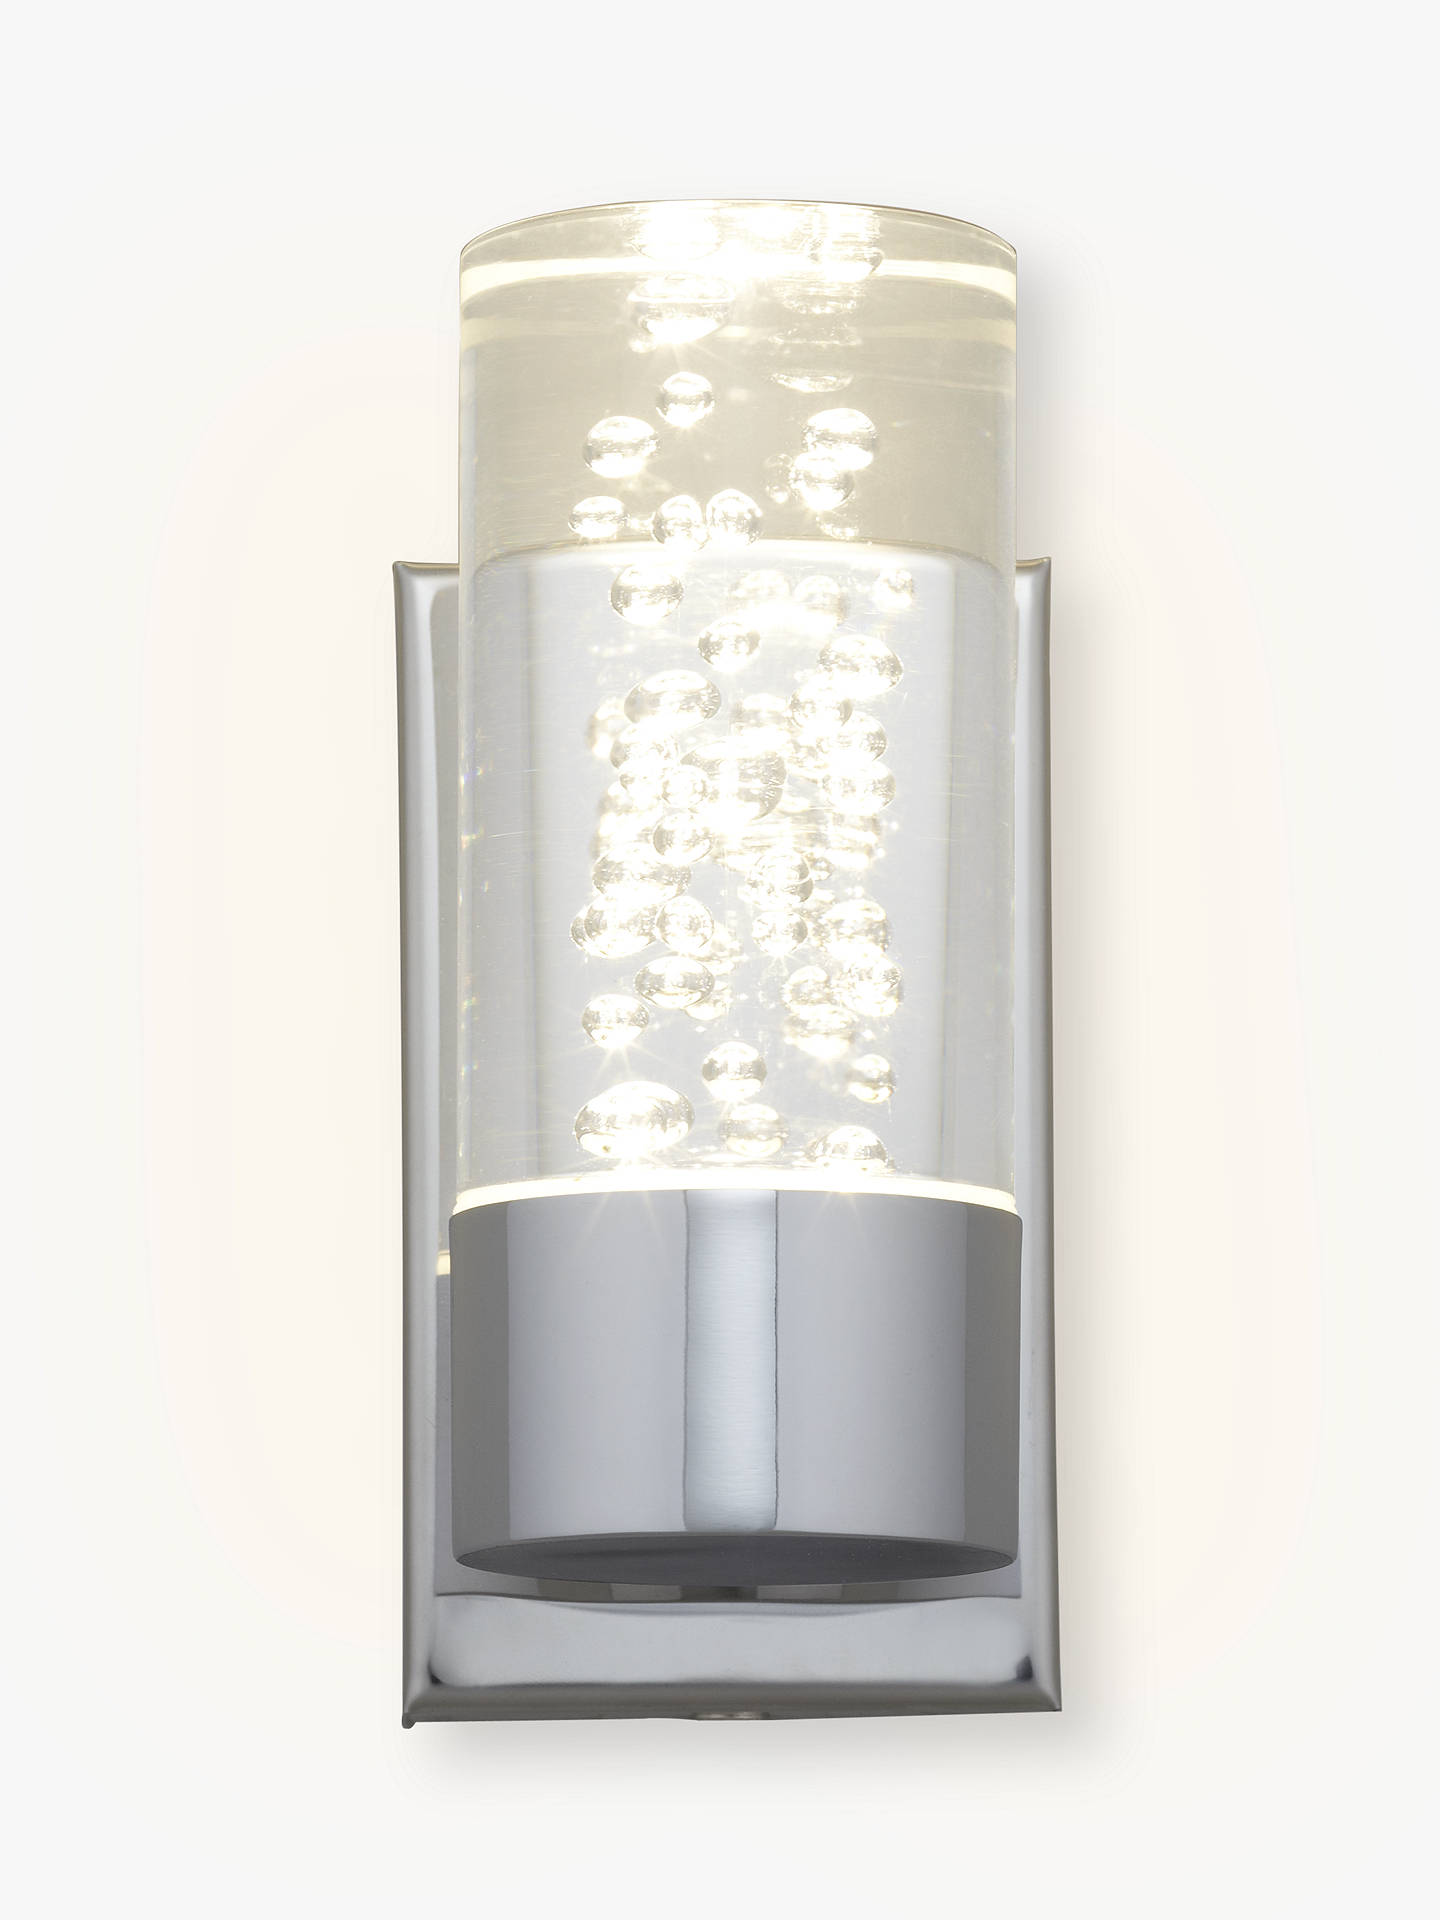 BuyJohn Lewis & Partners Zeus Bubbles Bathroom Wall Light Online at johnlewis. ...